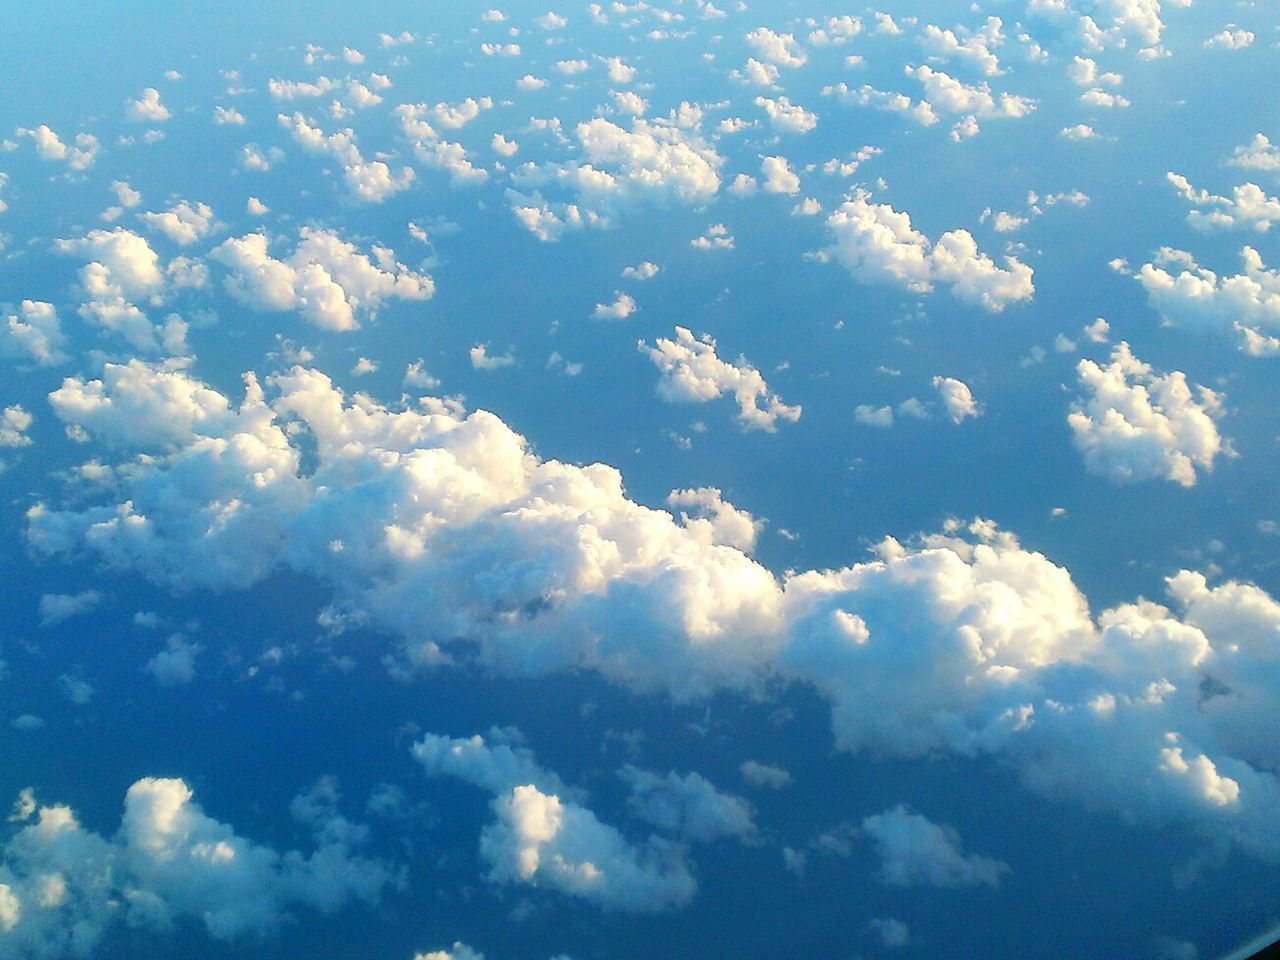 Clouds Clouds And Sky No People Aerial View Sky Cloud - Sky Cloudscape Sunlight Tranquility Scenics Day Mobile Photography